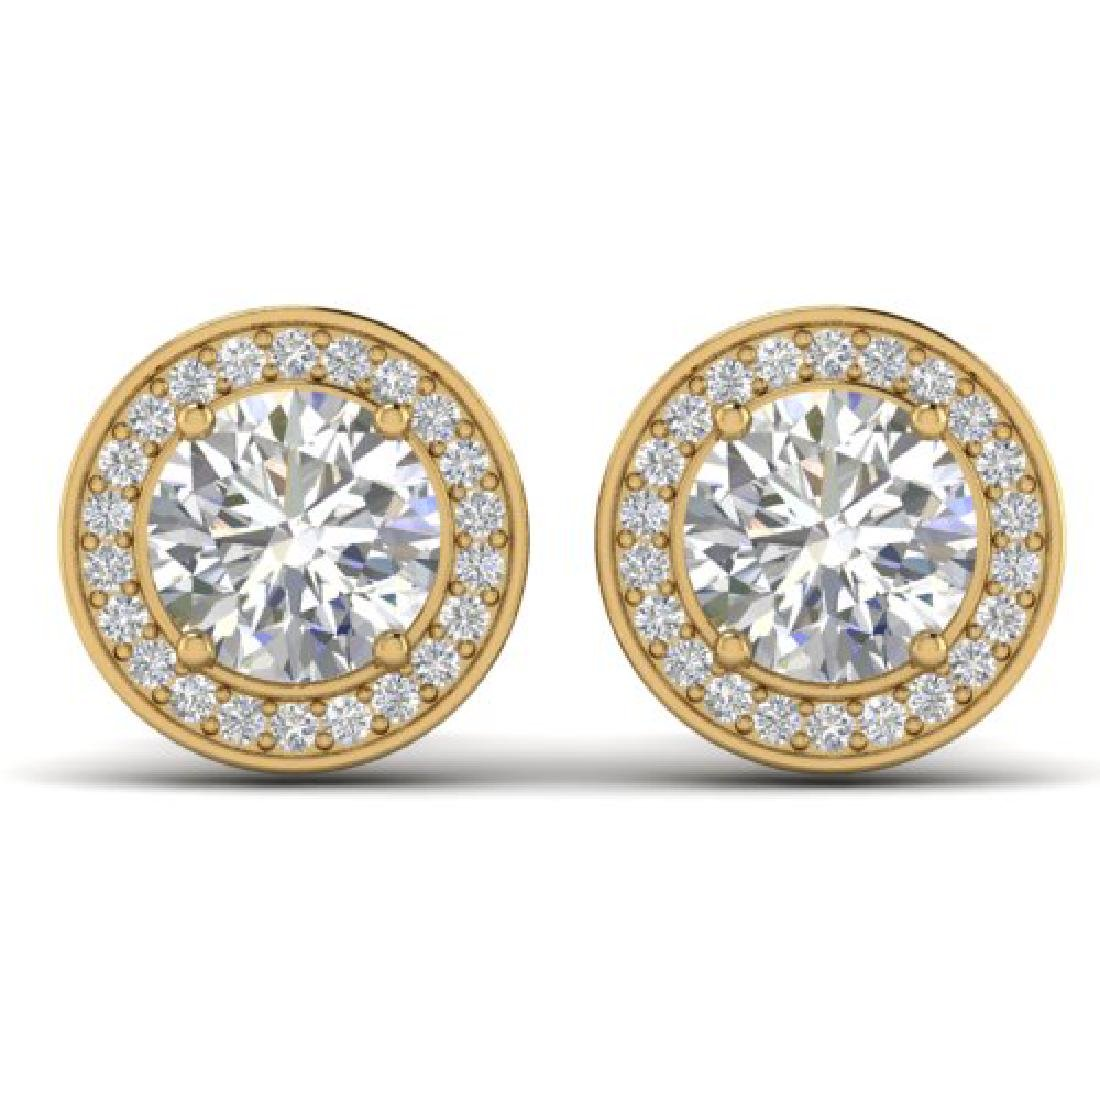 1.85 CTW I-SI Diamond Solitaire Art Deco Micro Stud